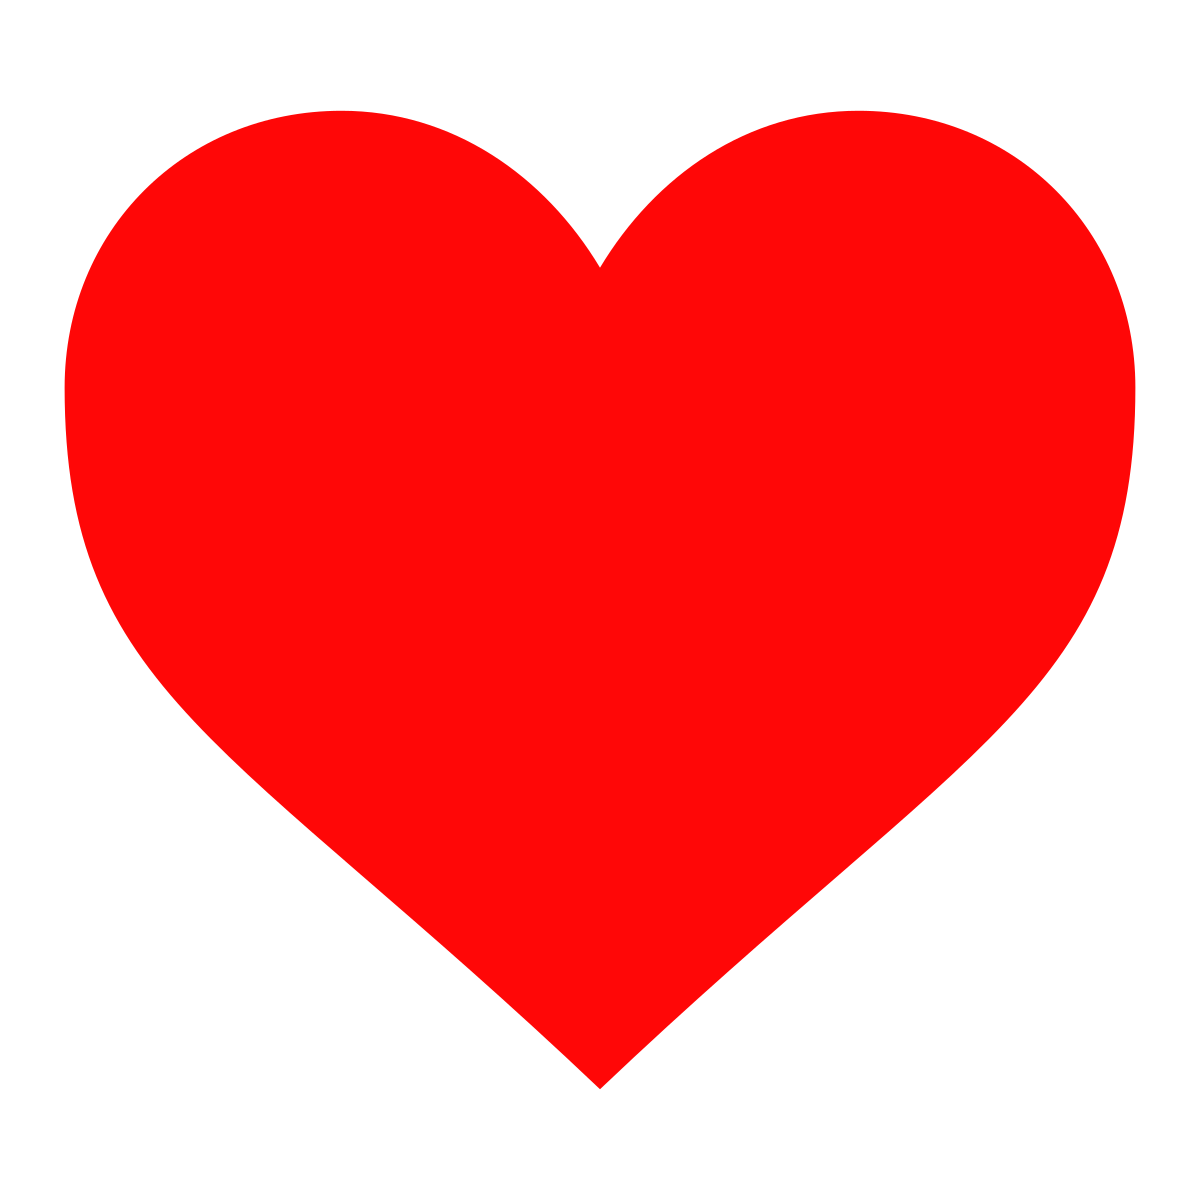 Heart symbol wikipedia . Clipart hearts map